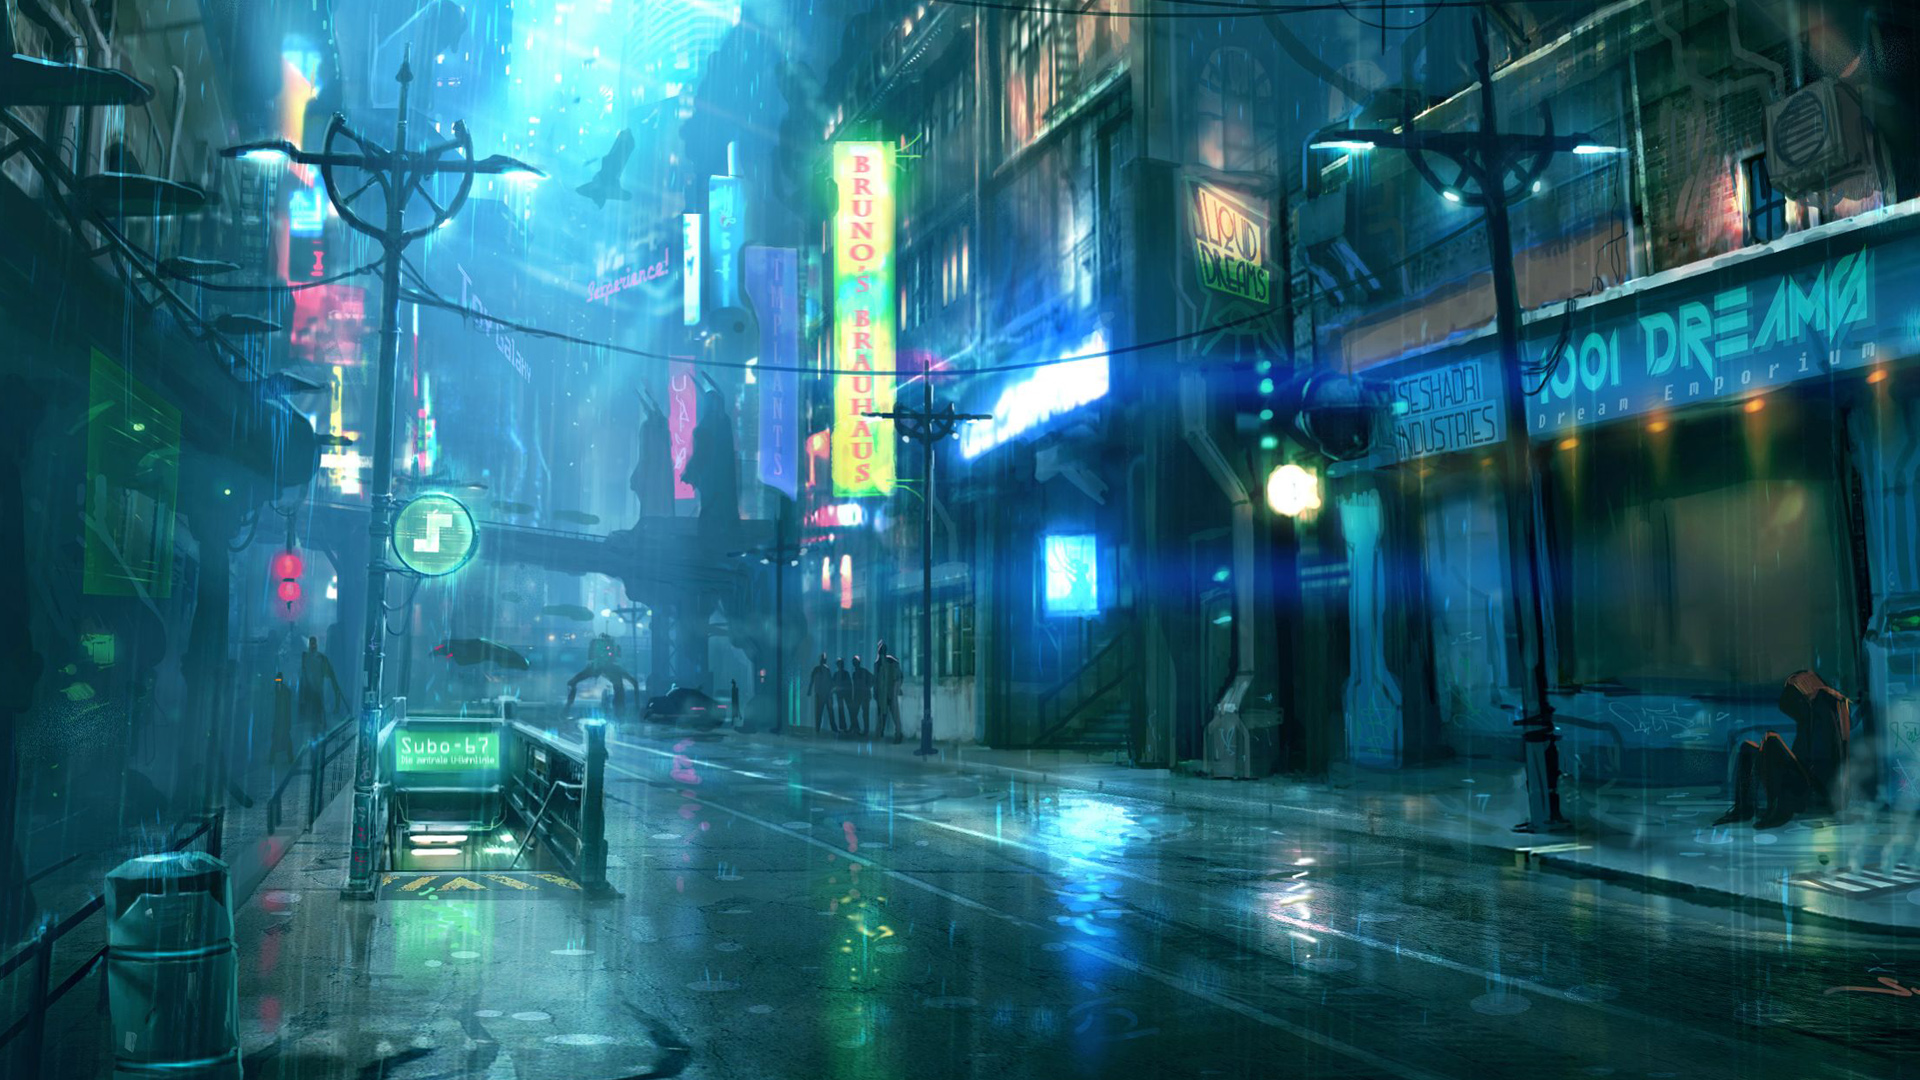 http://s1.picswalls.com/wallpapers/2015/11/22/cyberpunk-wallpaper_102105675_292.jpg